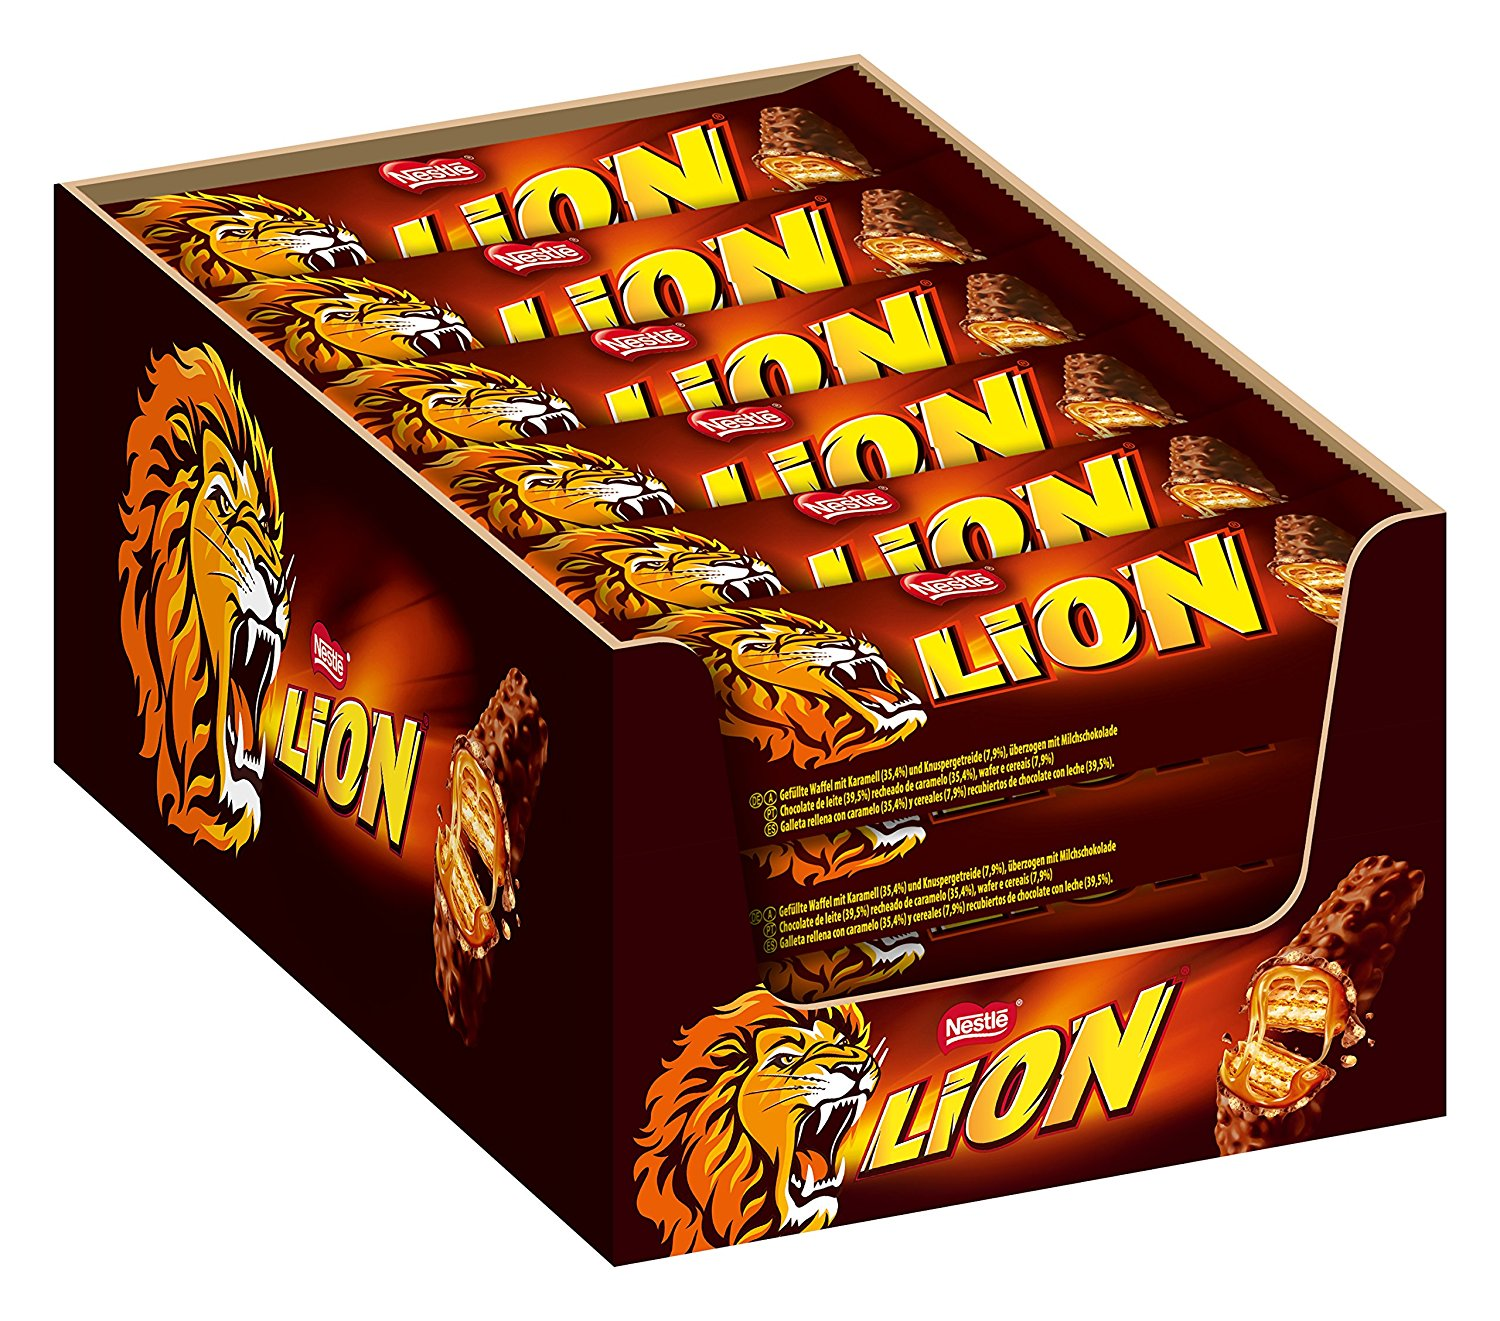 Nestle Lion amazon